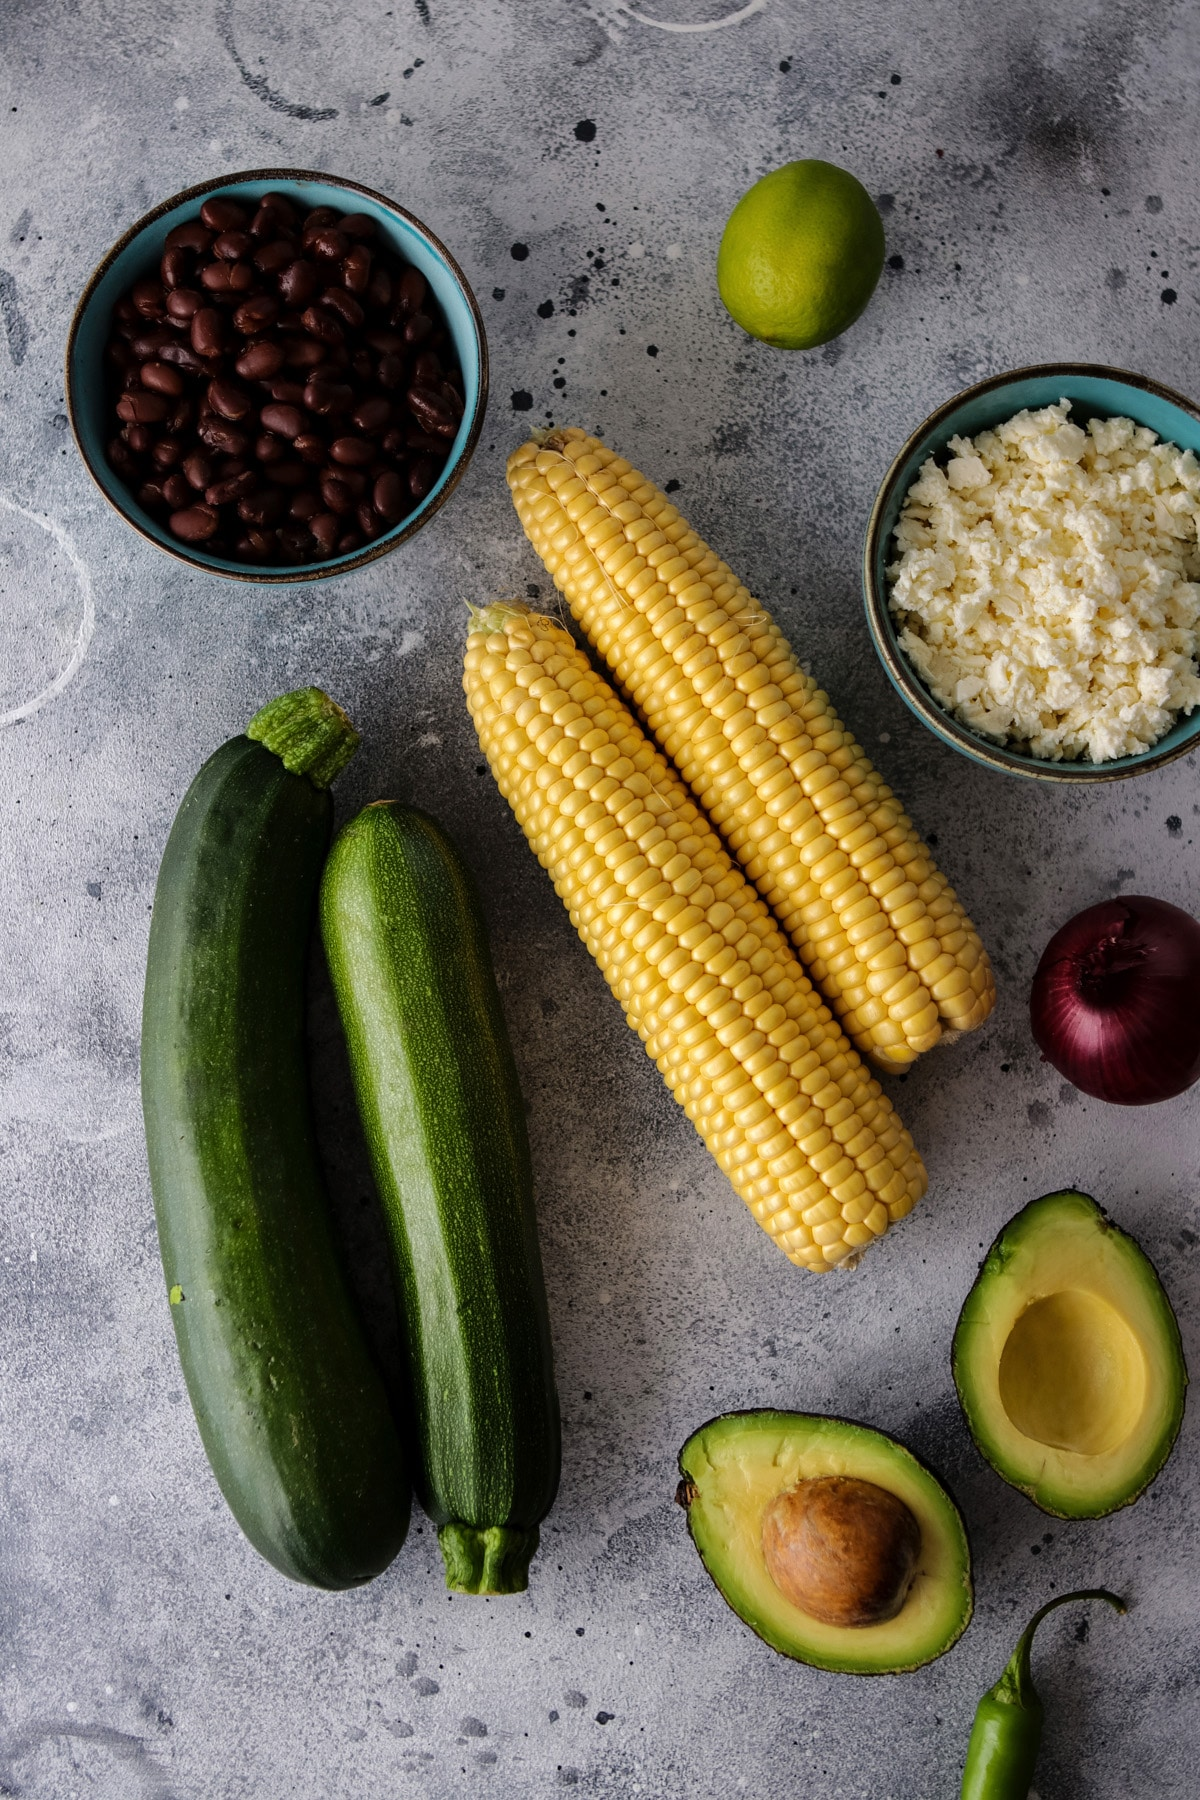 Ingredients for the Salad, Zucchini, Corn, Black Beans, Avocado, Feta Cheese and Red Onion